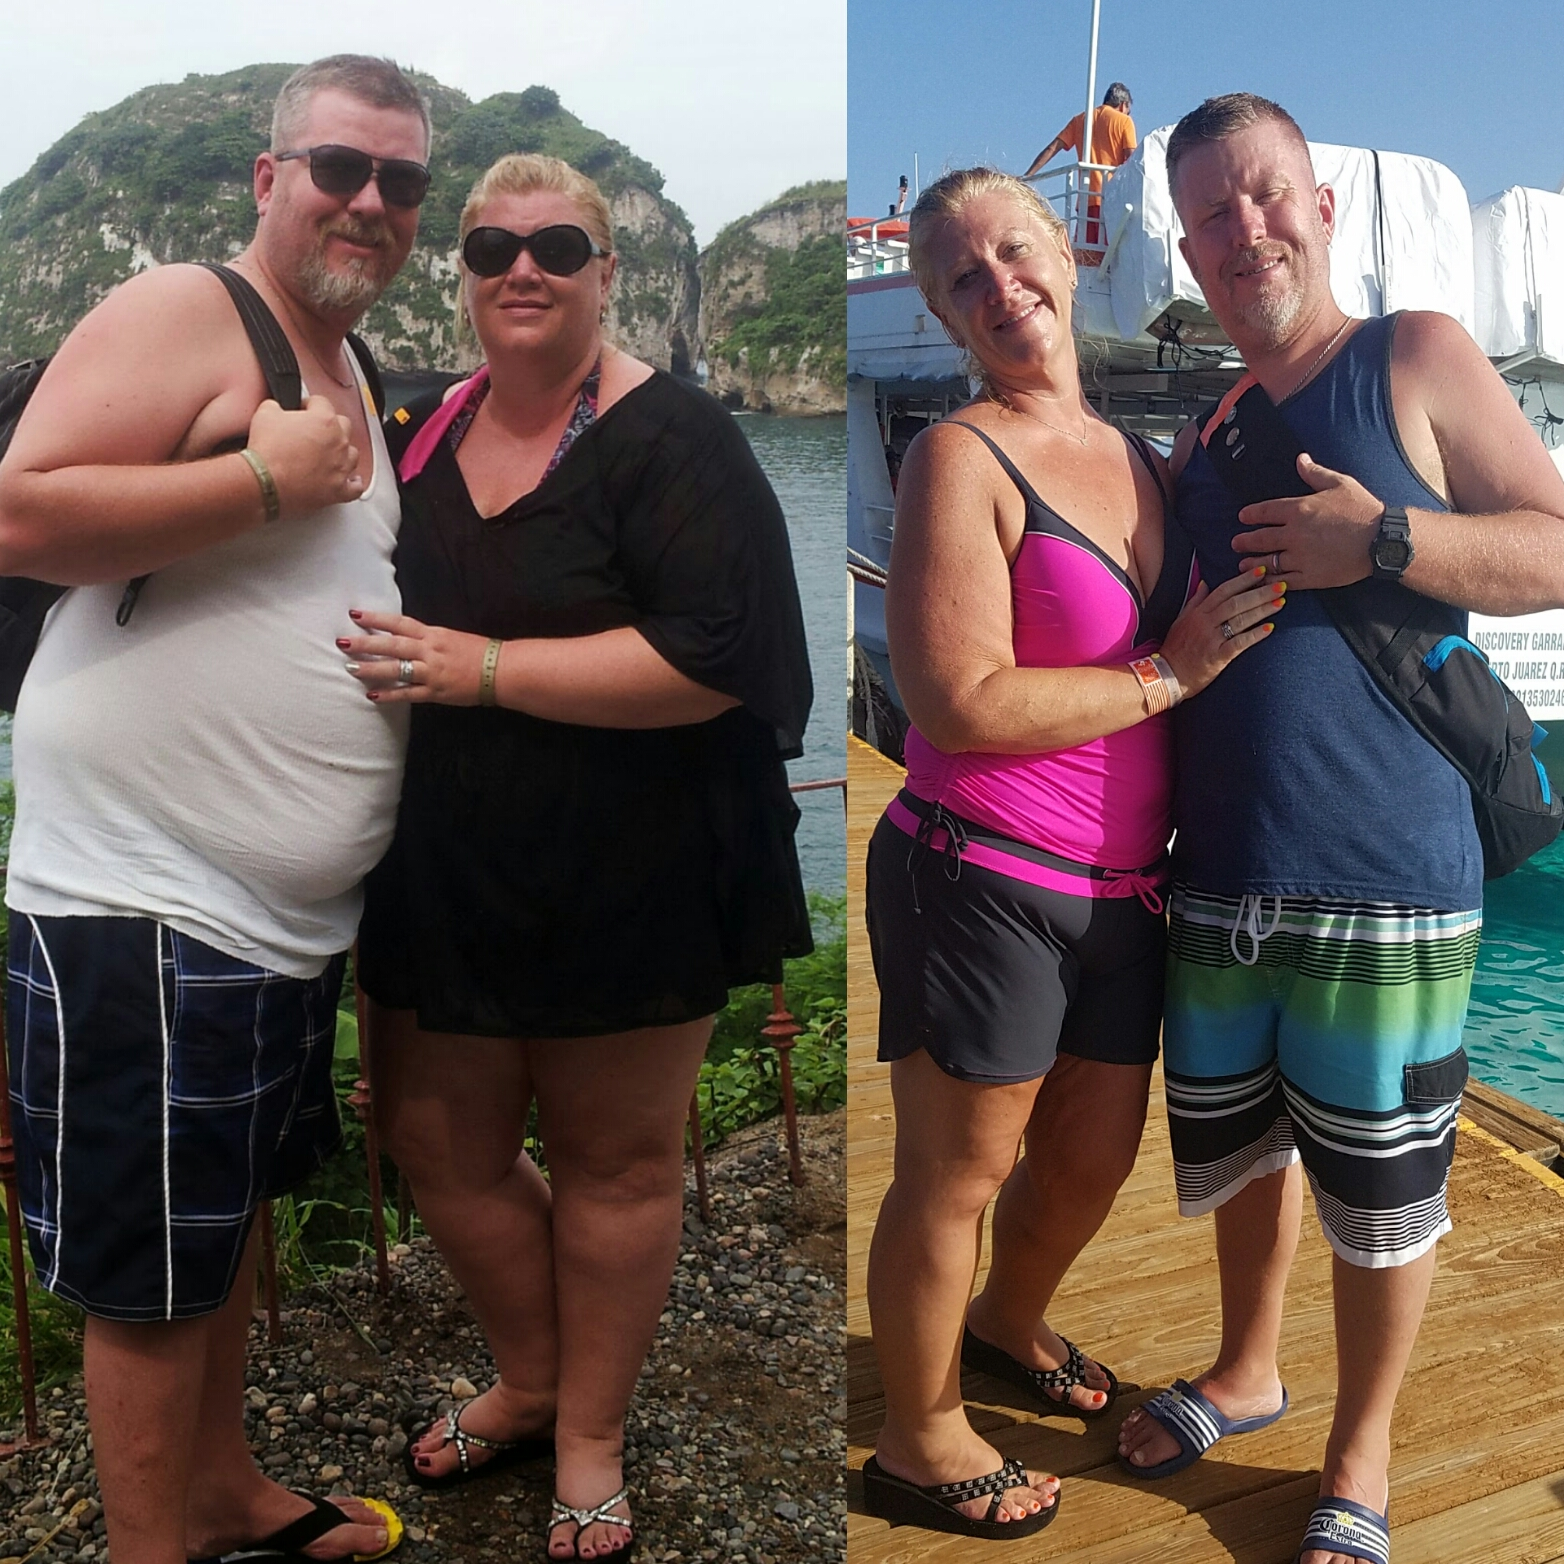 Great success story! Read before and after fitness transformation stories from women and men who hit weight loss goals and got THAT BODY with training and meal prep. Find inspiration, motivation, and workout tips | 173/100 Pounds Lost: Low Carb Lifestyle Saved Our Lives